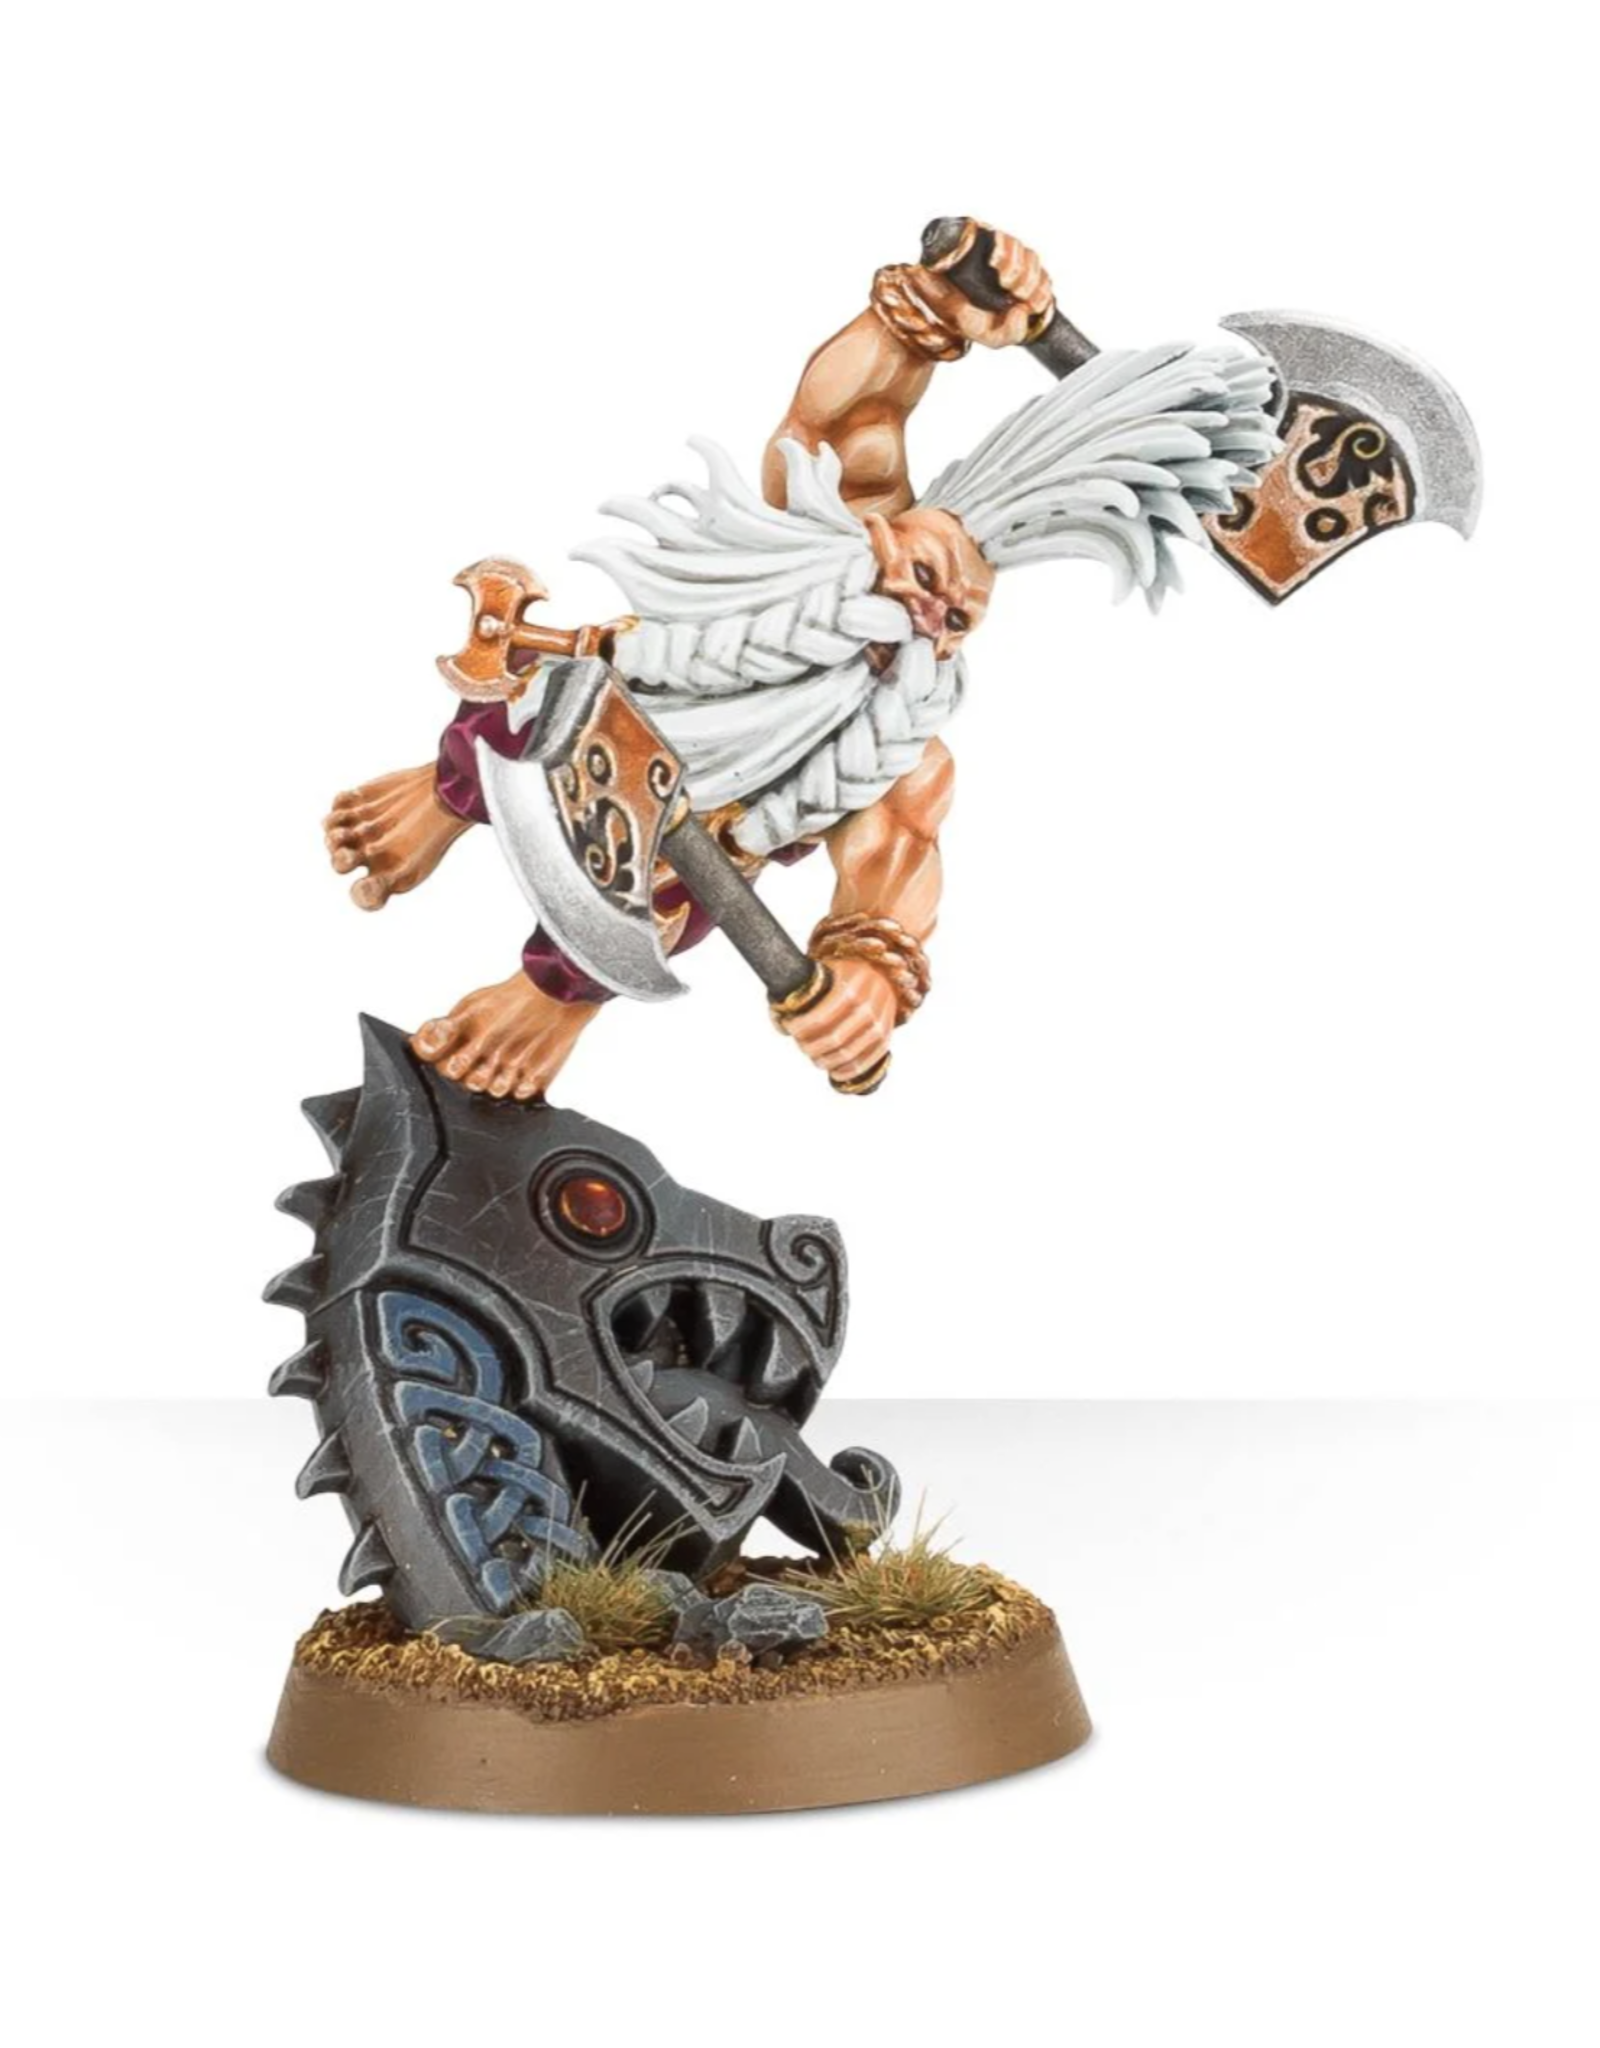 Age of Sigmar Grombrindal, The White Dwarf